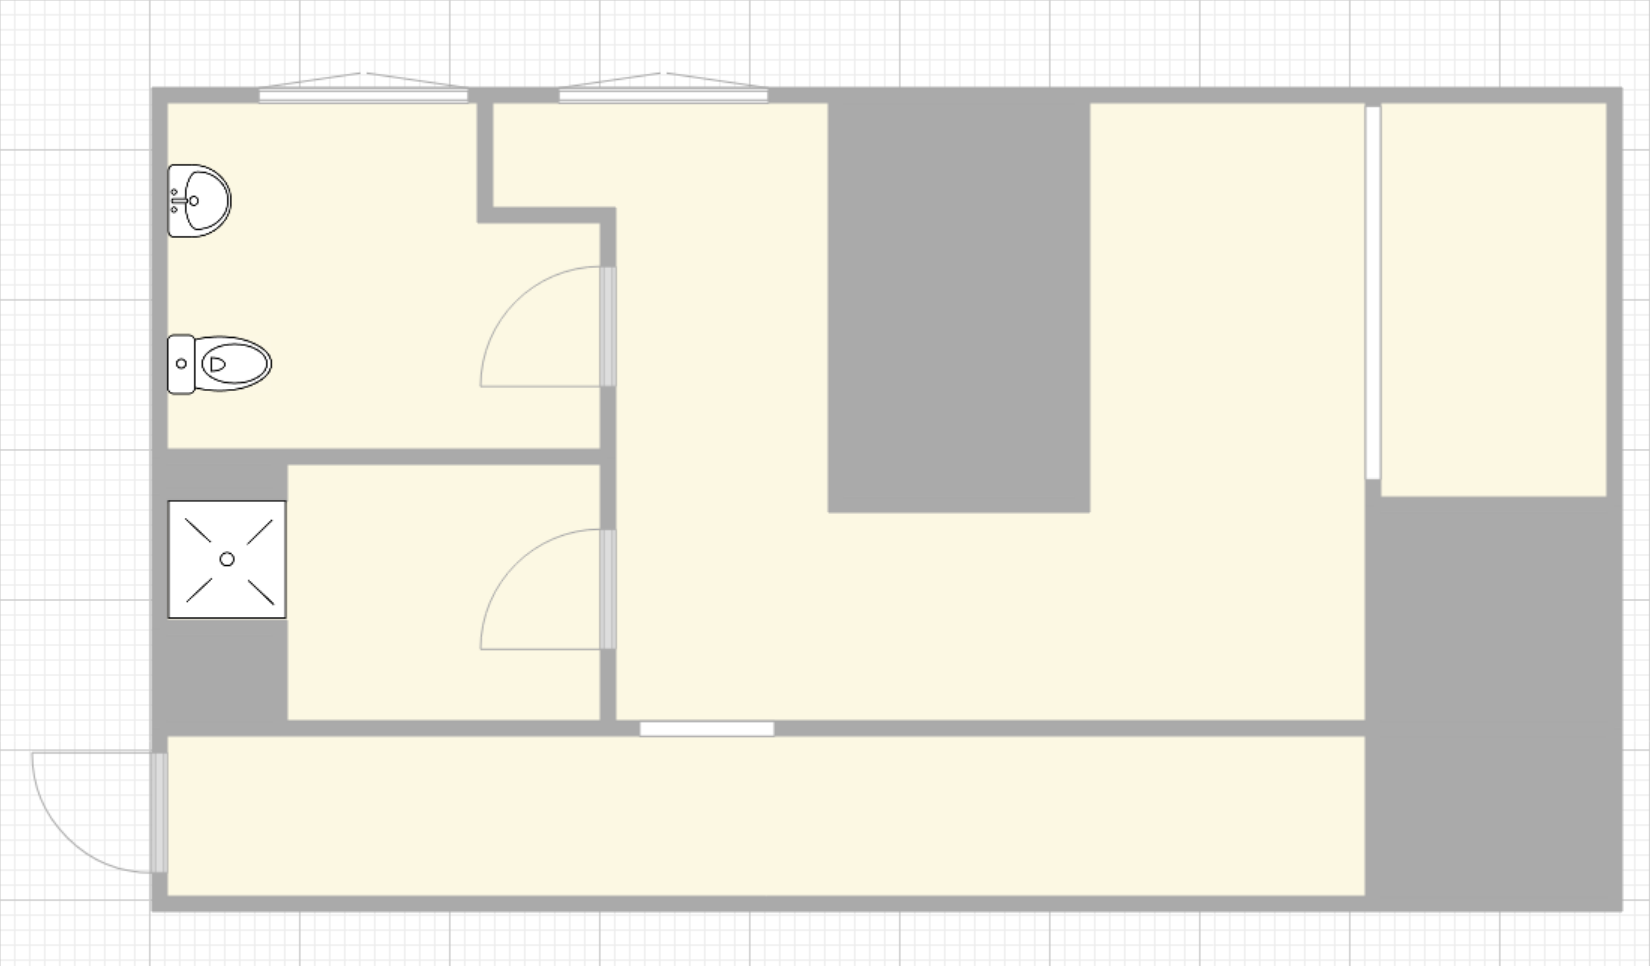 file:57n_upstairs_plan.png